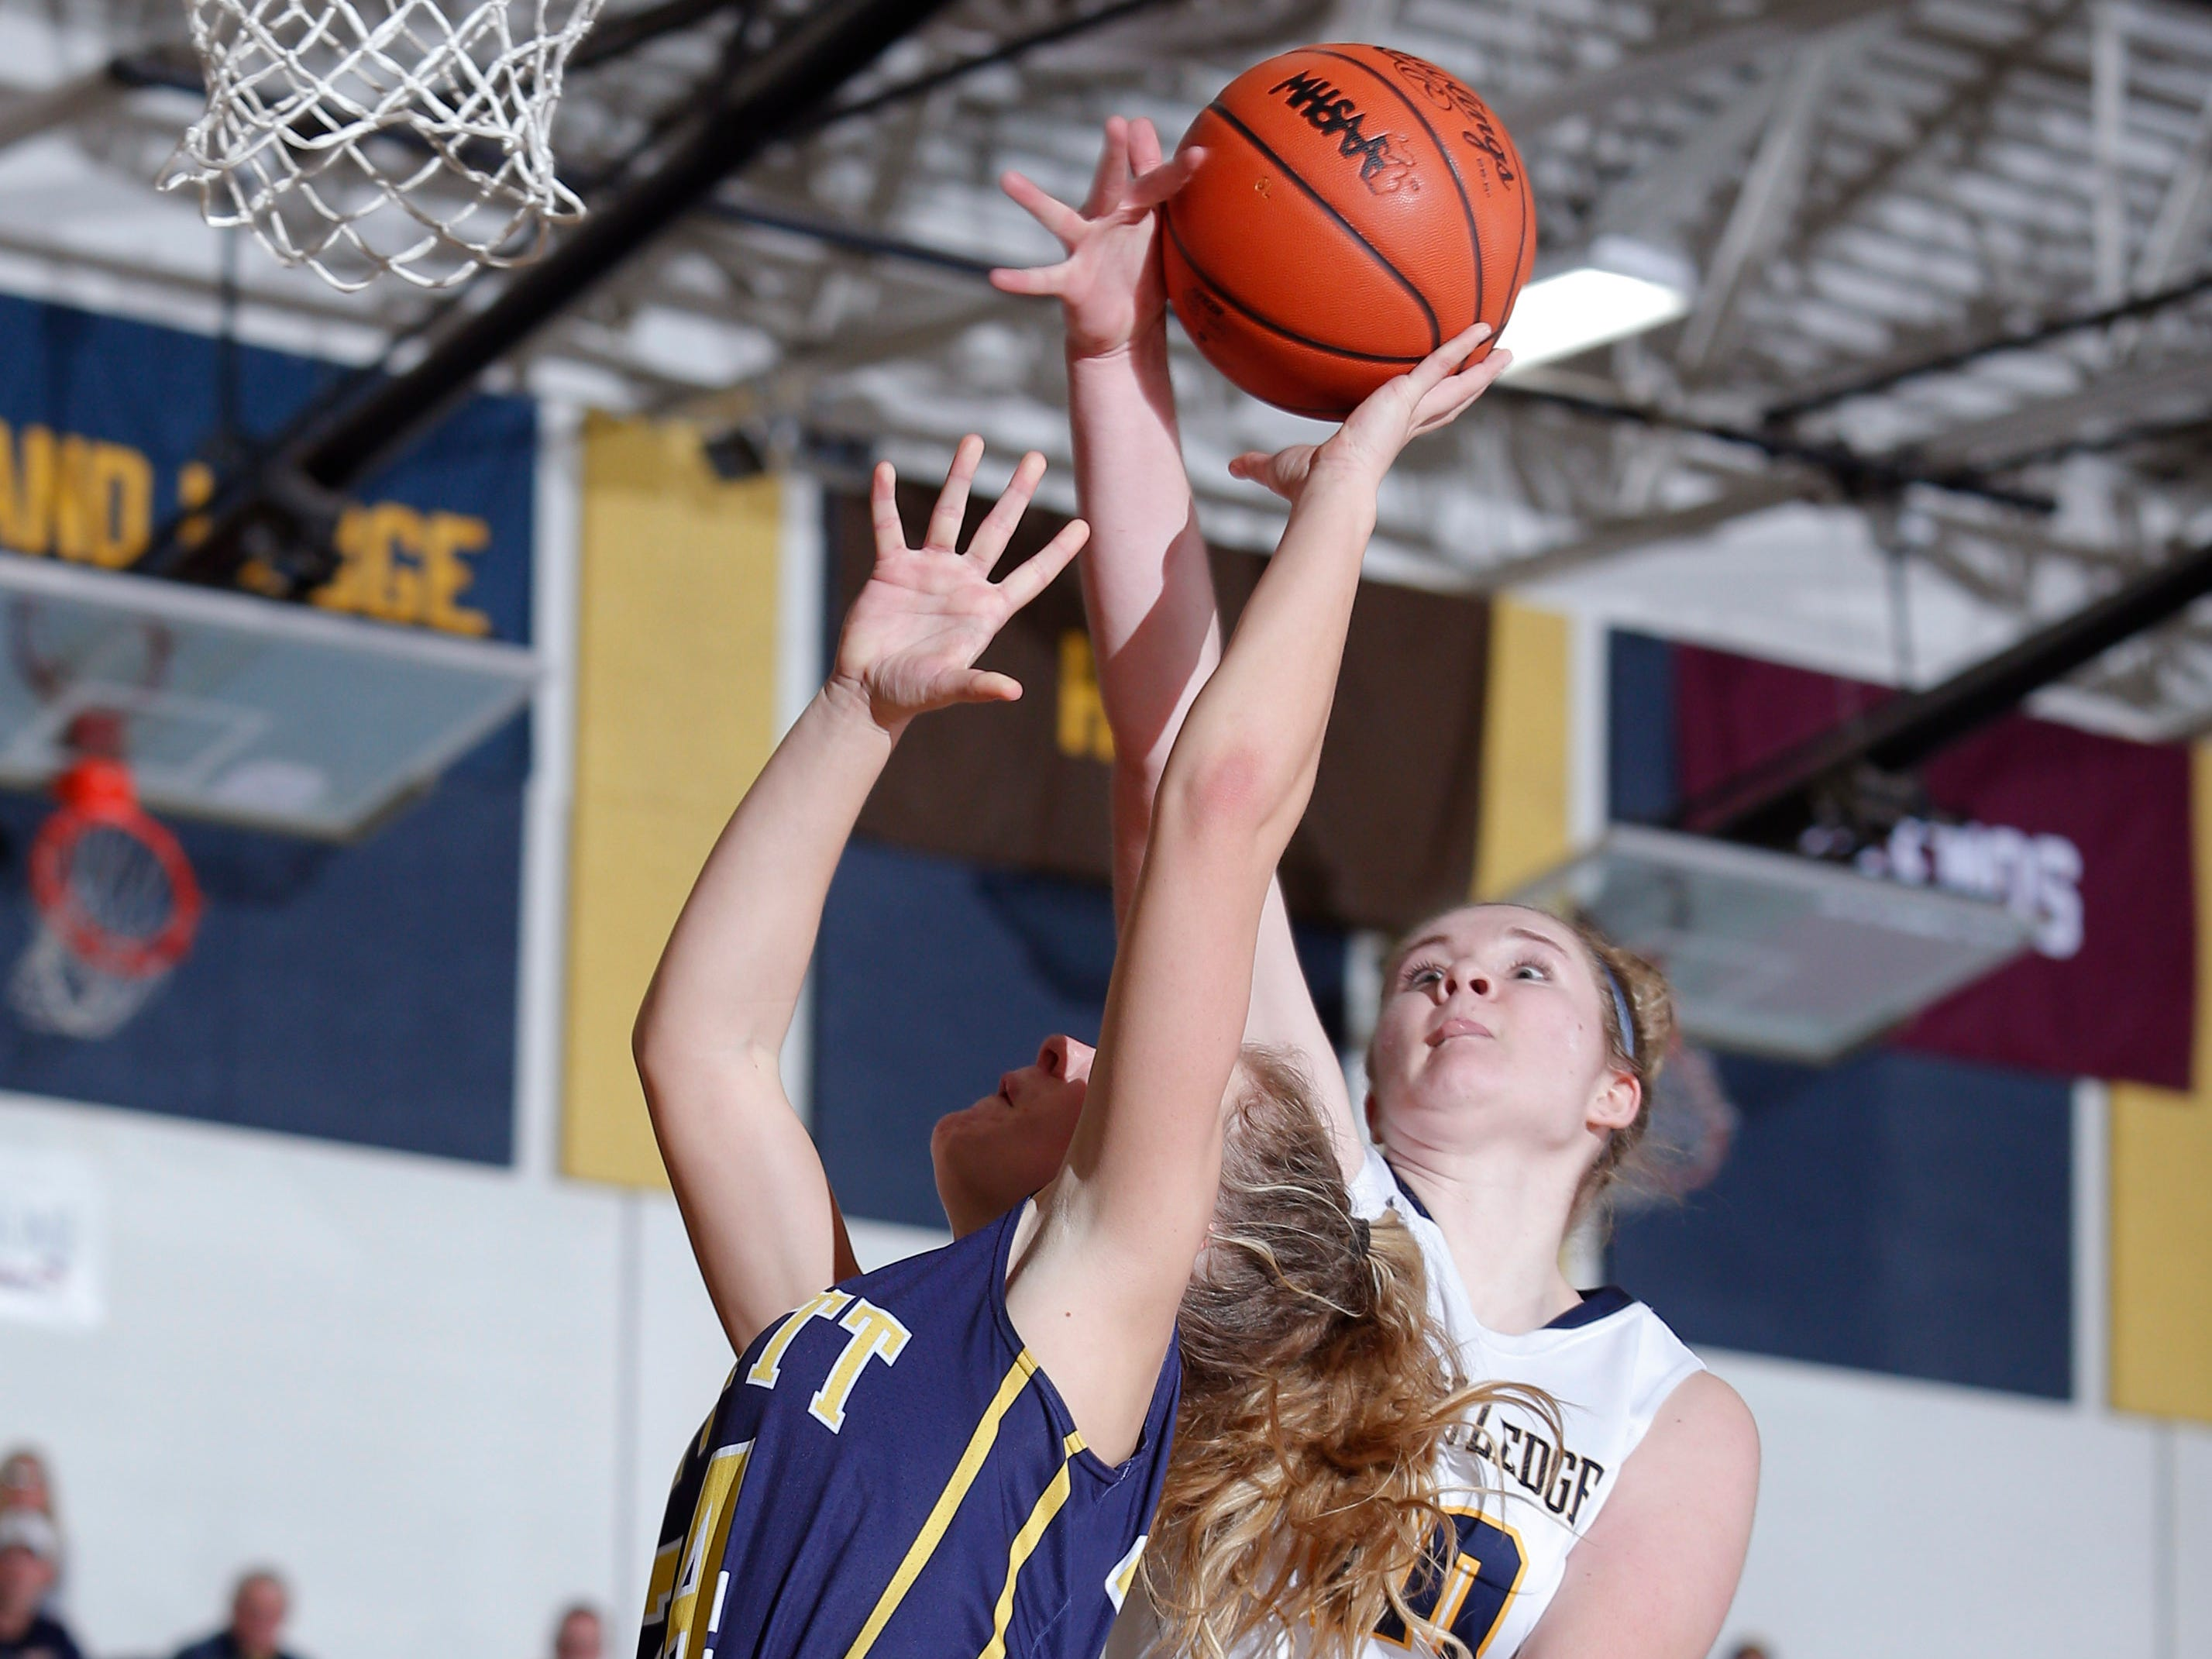 Grand Ledge's Courtney Sharland, right, blocks a shot by DeWitt's Annie McIntosh, Tuesday, Jan. 15, 2019, in Grand Ledge, Mich.